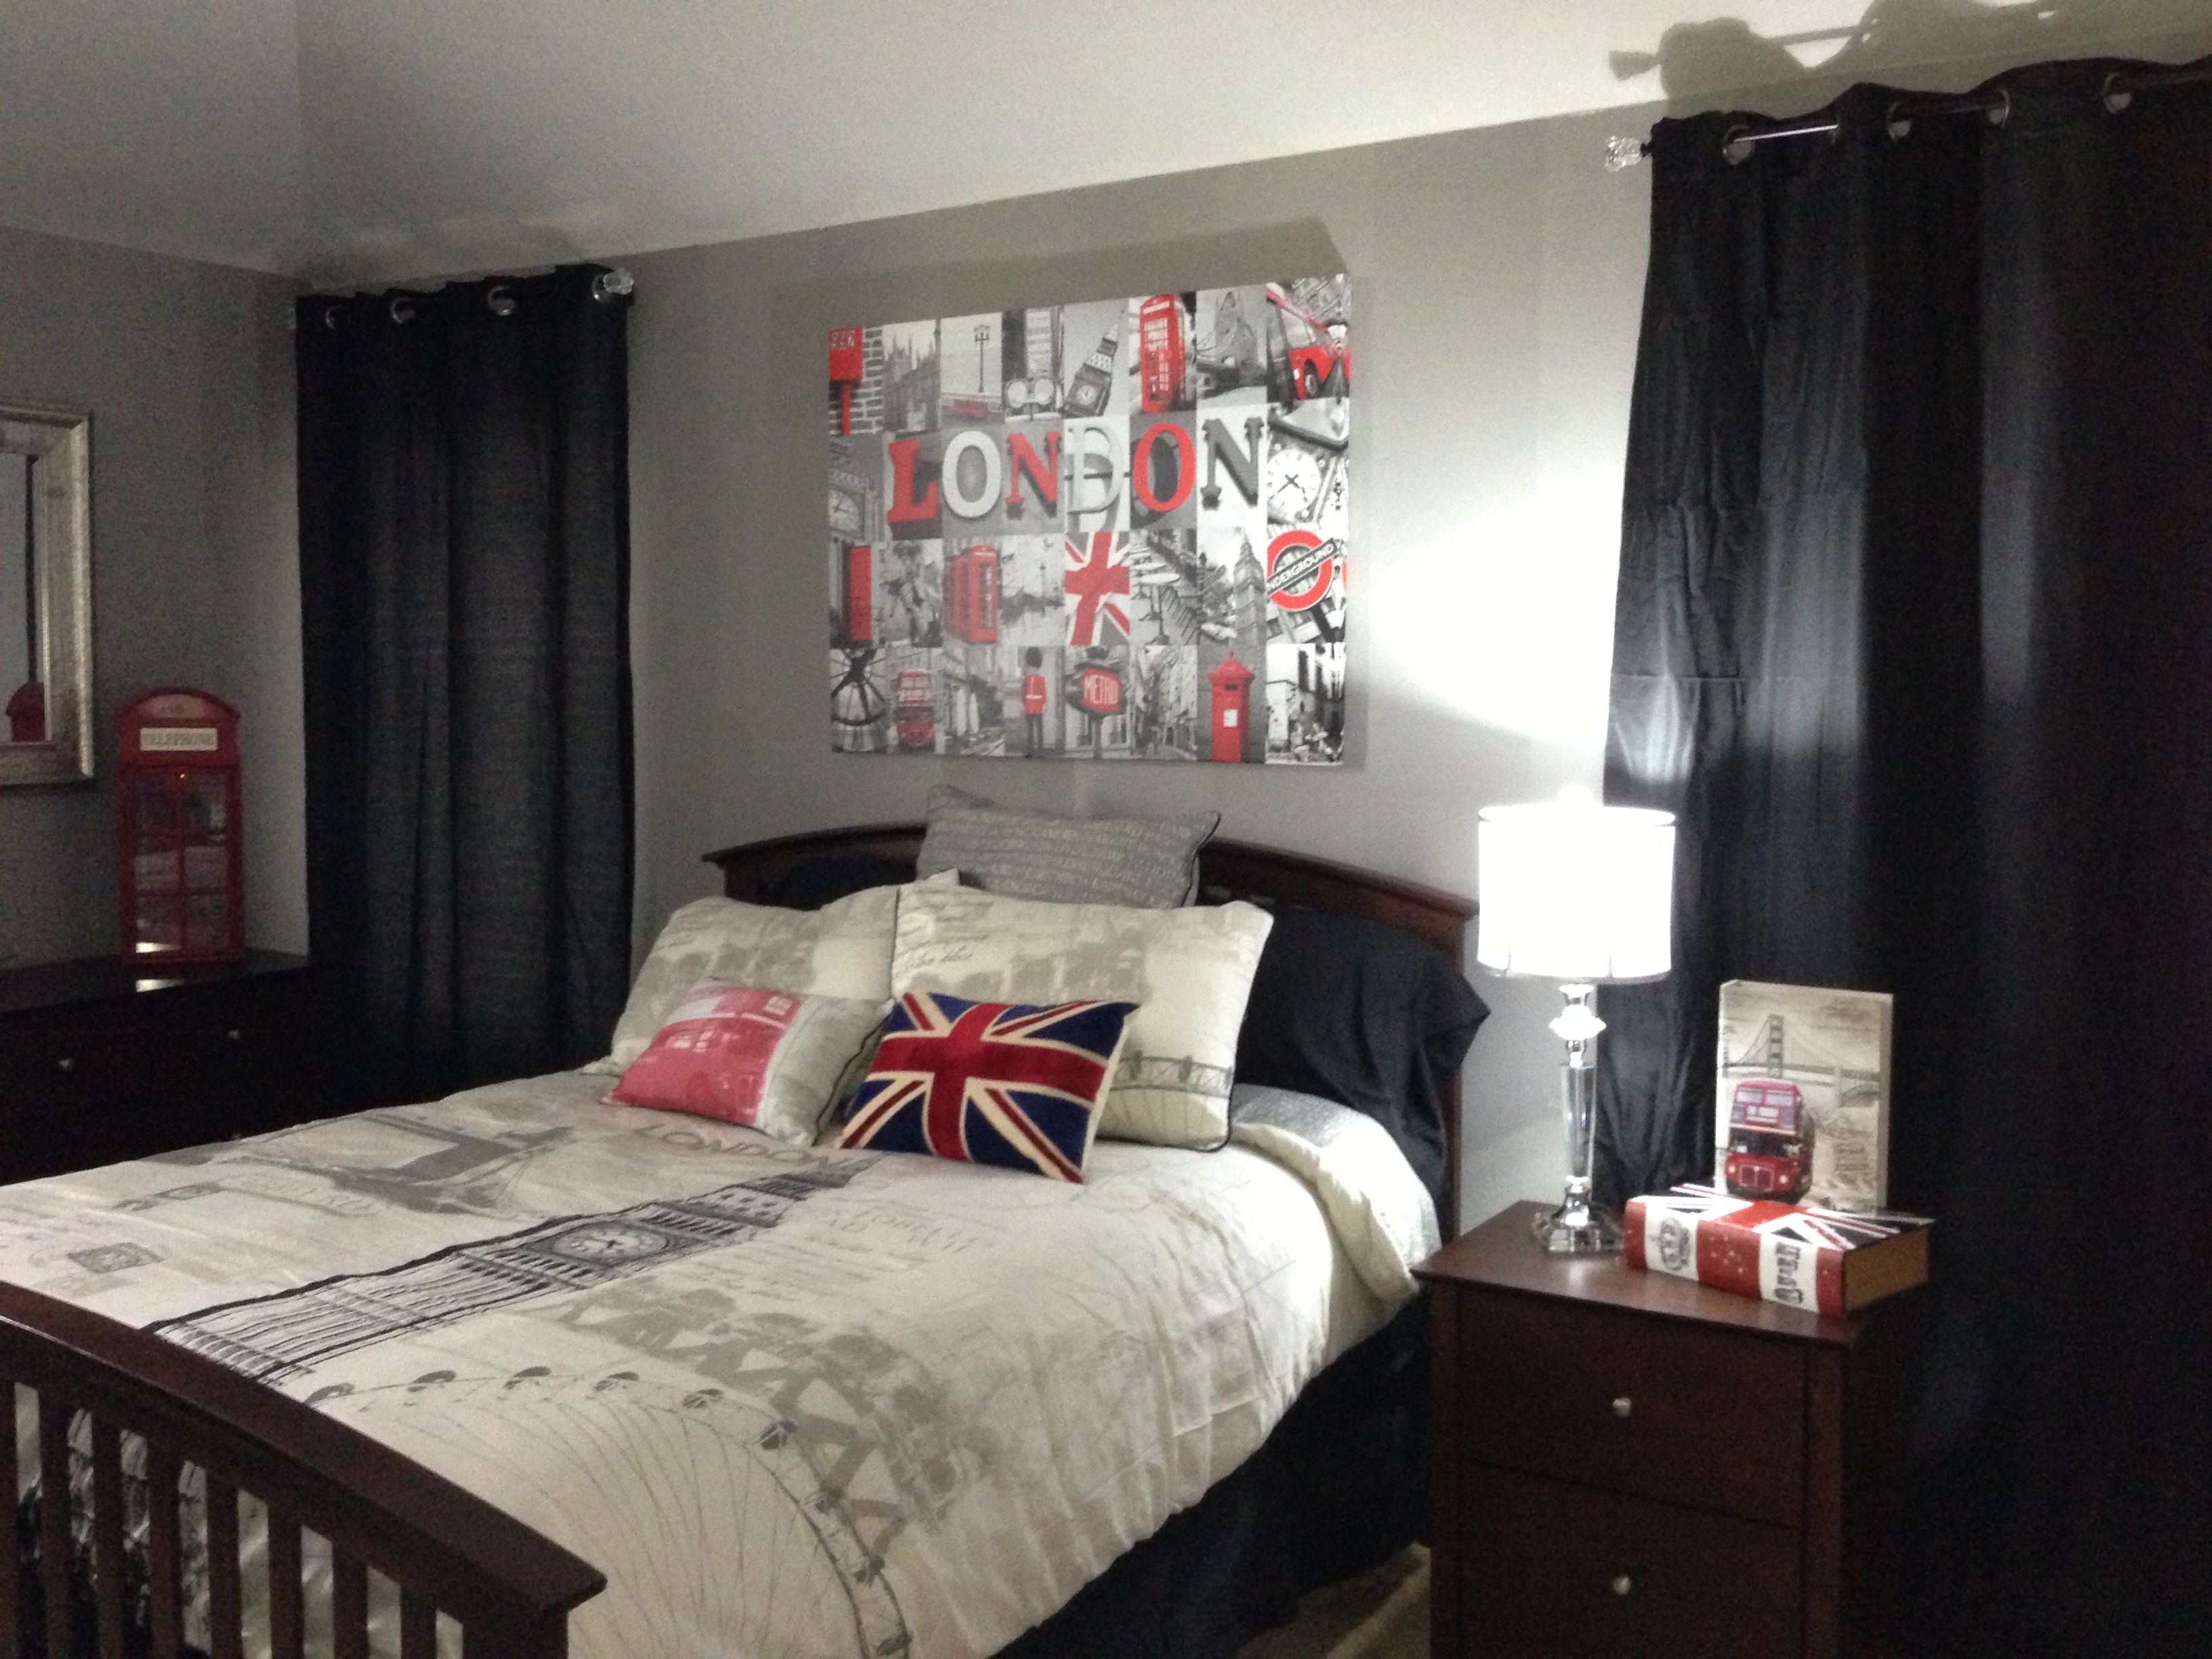 Bedroom Decor Themes 18 images and ideas girls room theme | interior design | pinterest